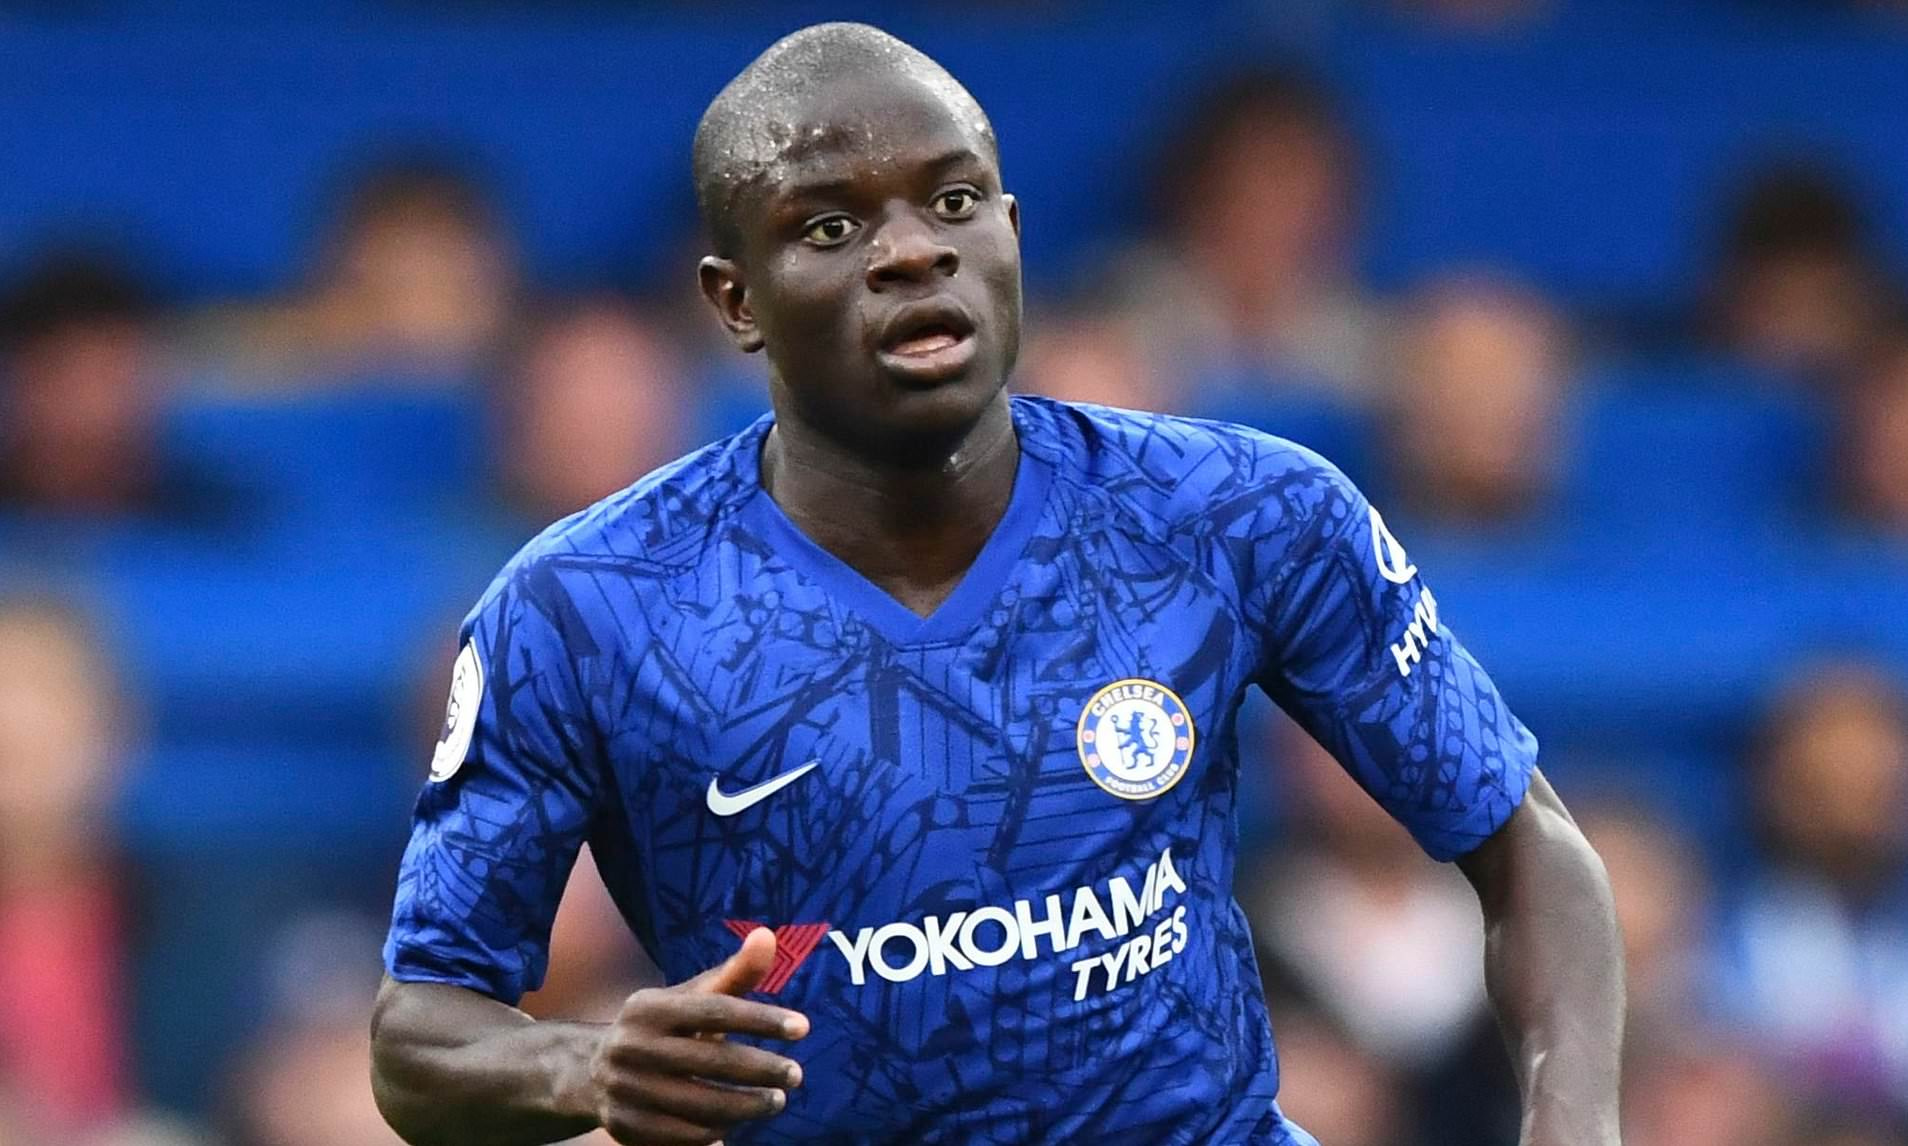 Chelsea 'ready to part' with Kante as they plan £50m transfer - Bóng Đá